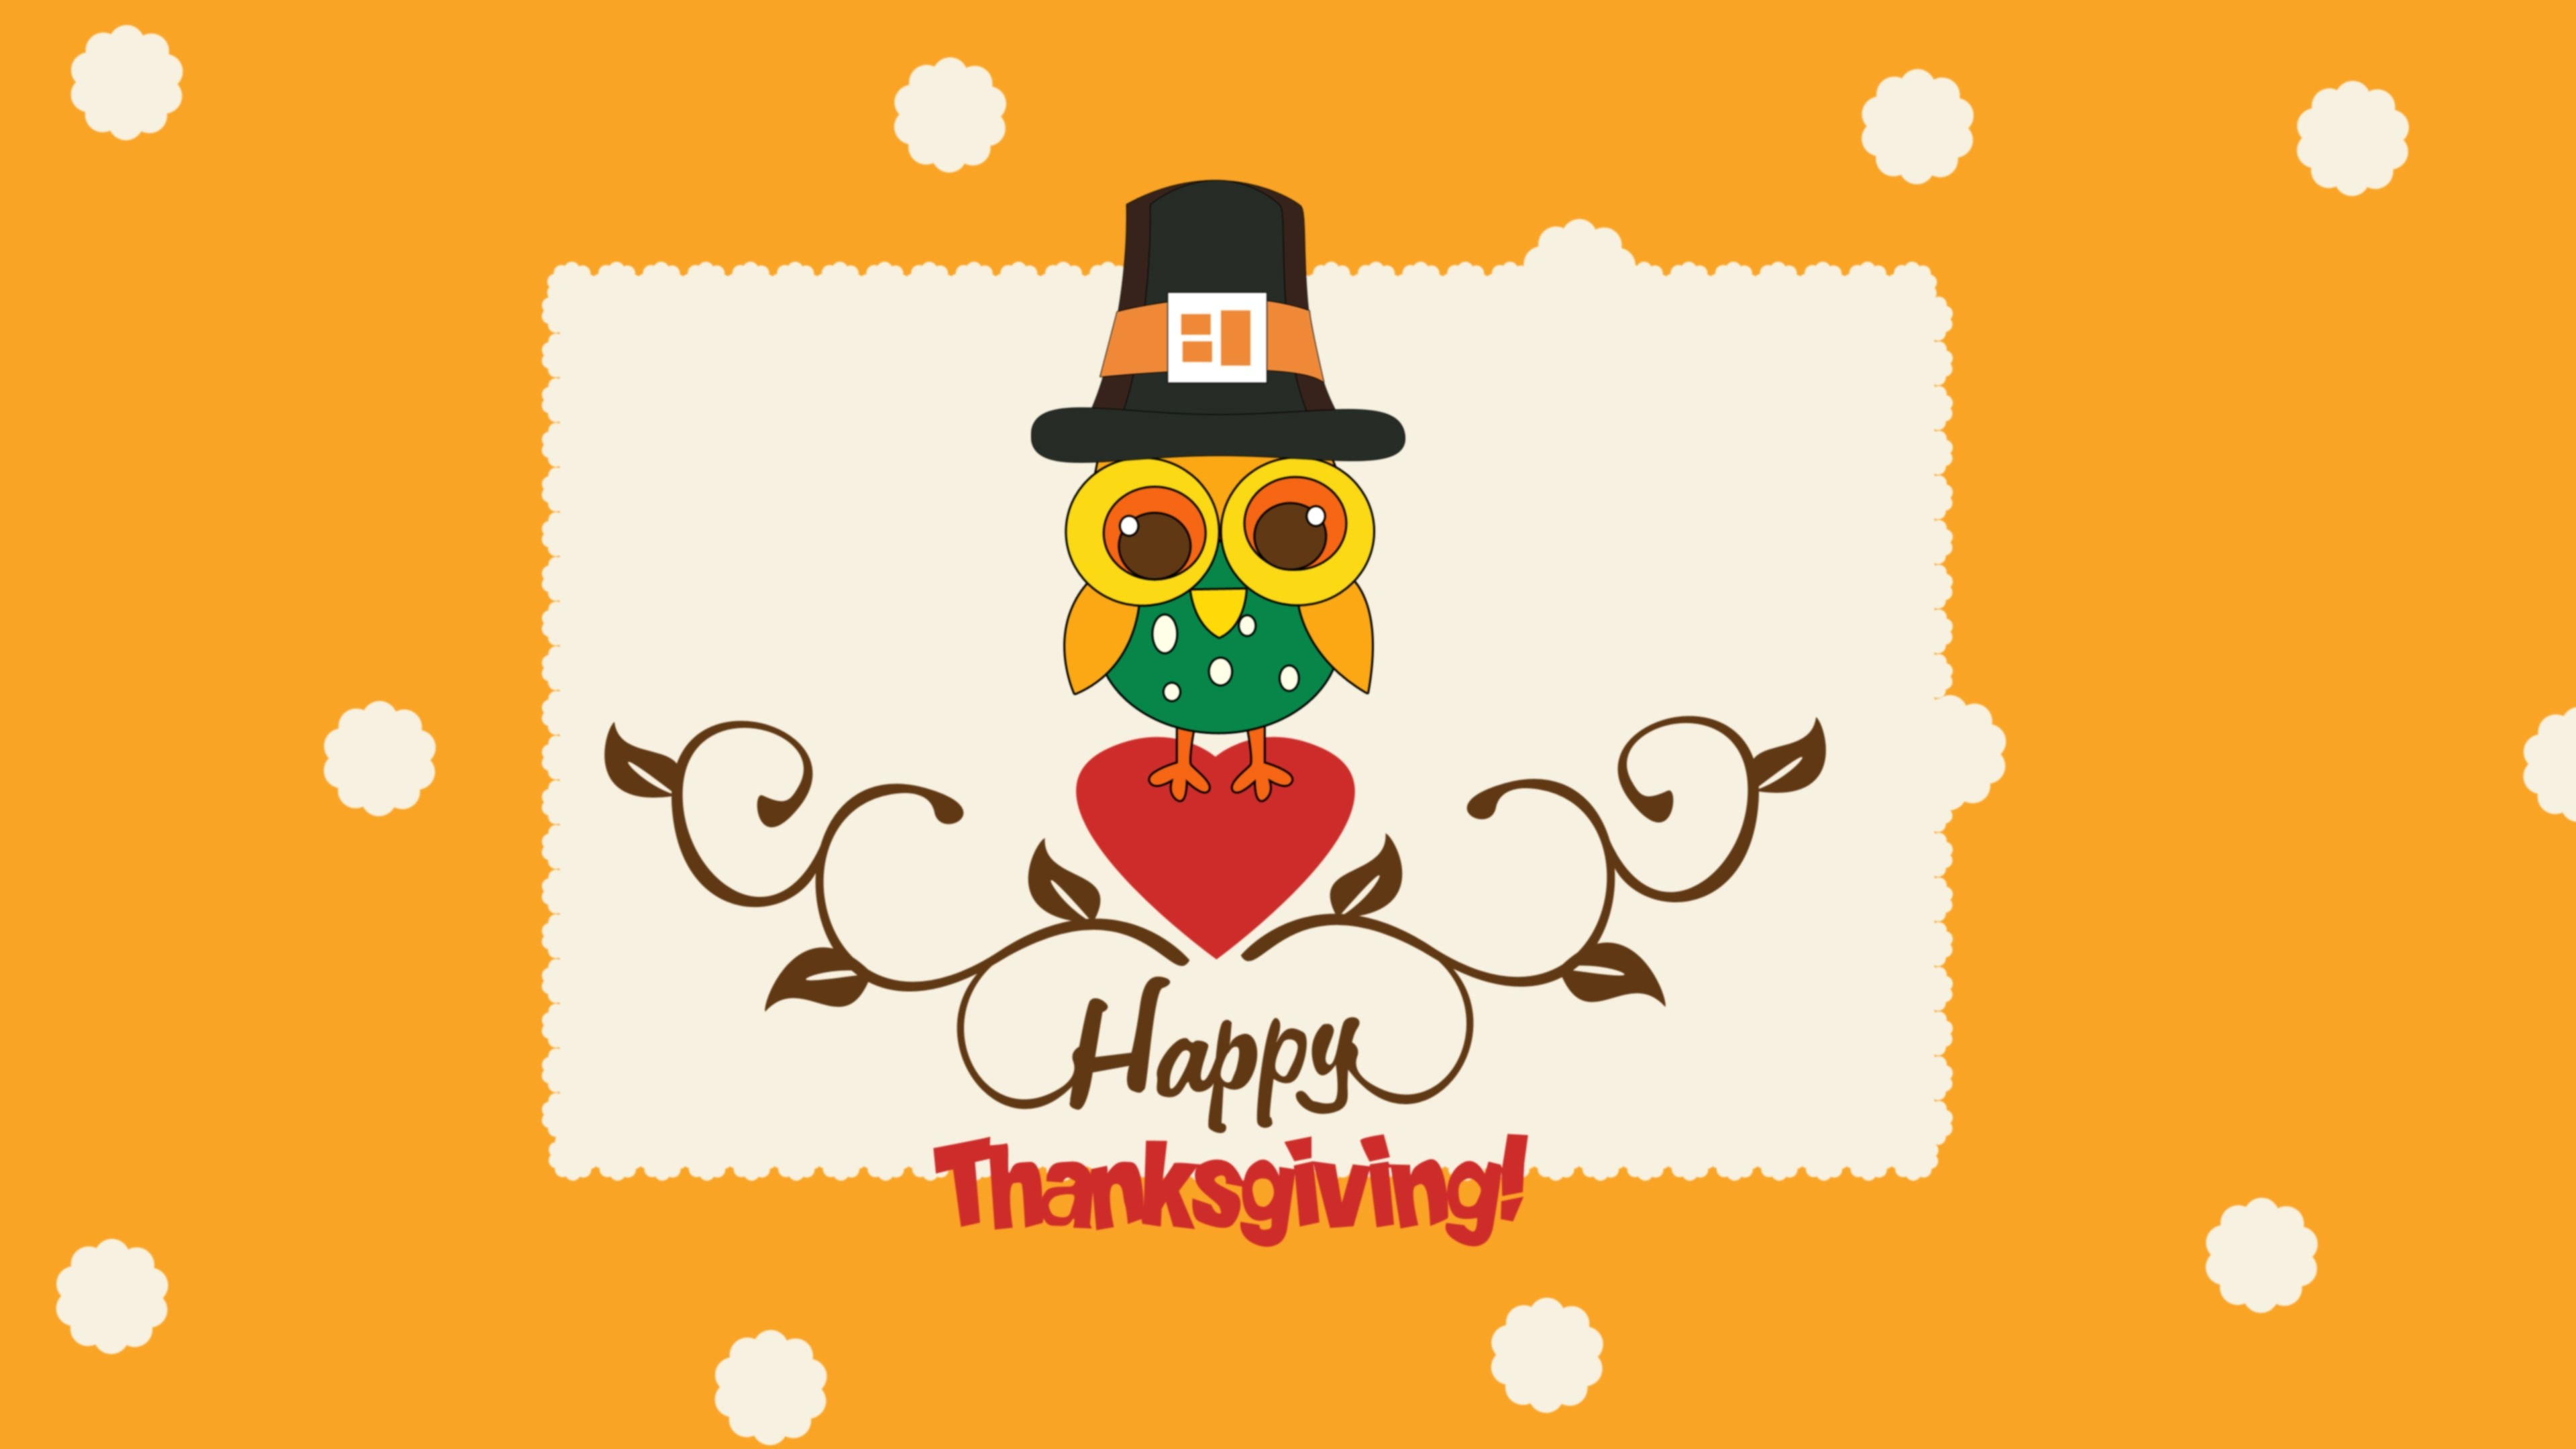 Res: 3840x2160, Free Cute Thanksgiving Photo.